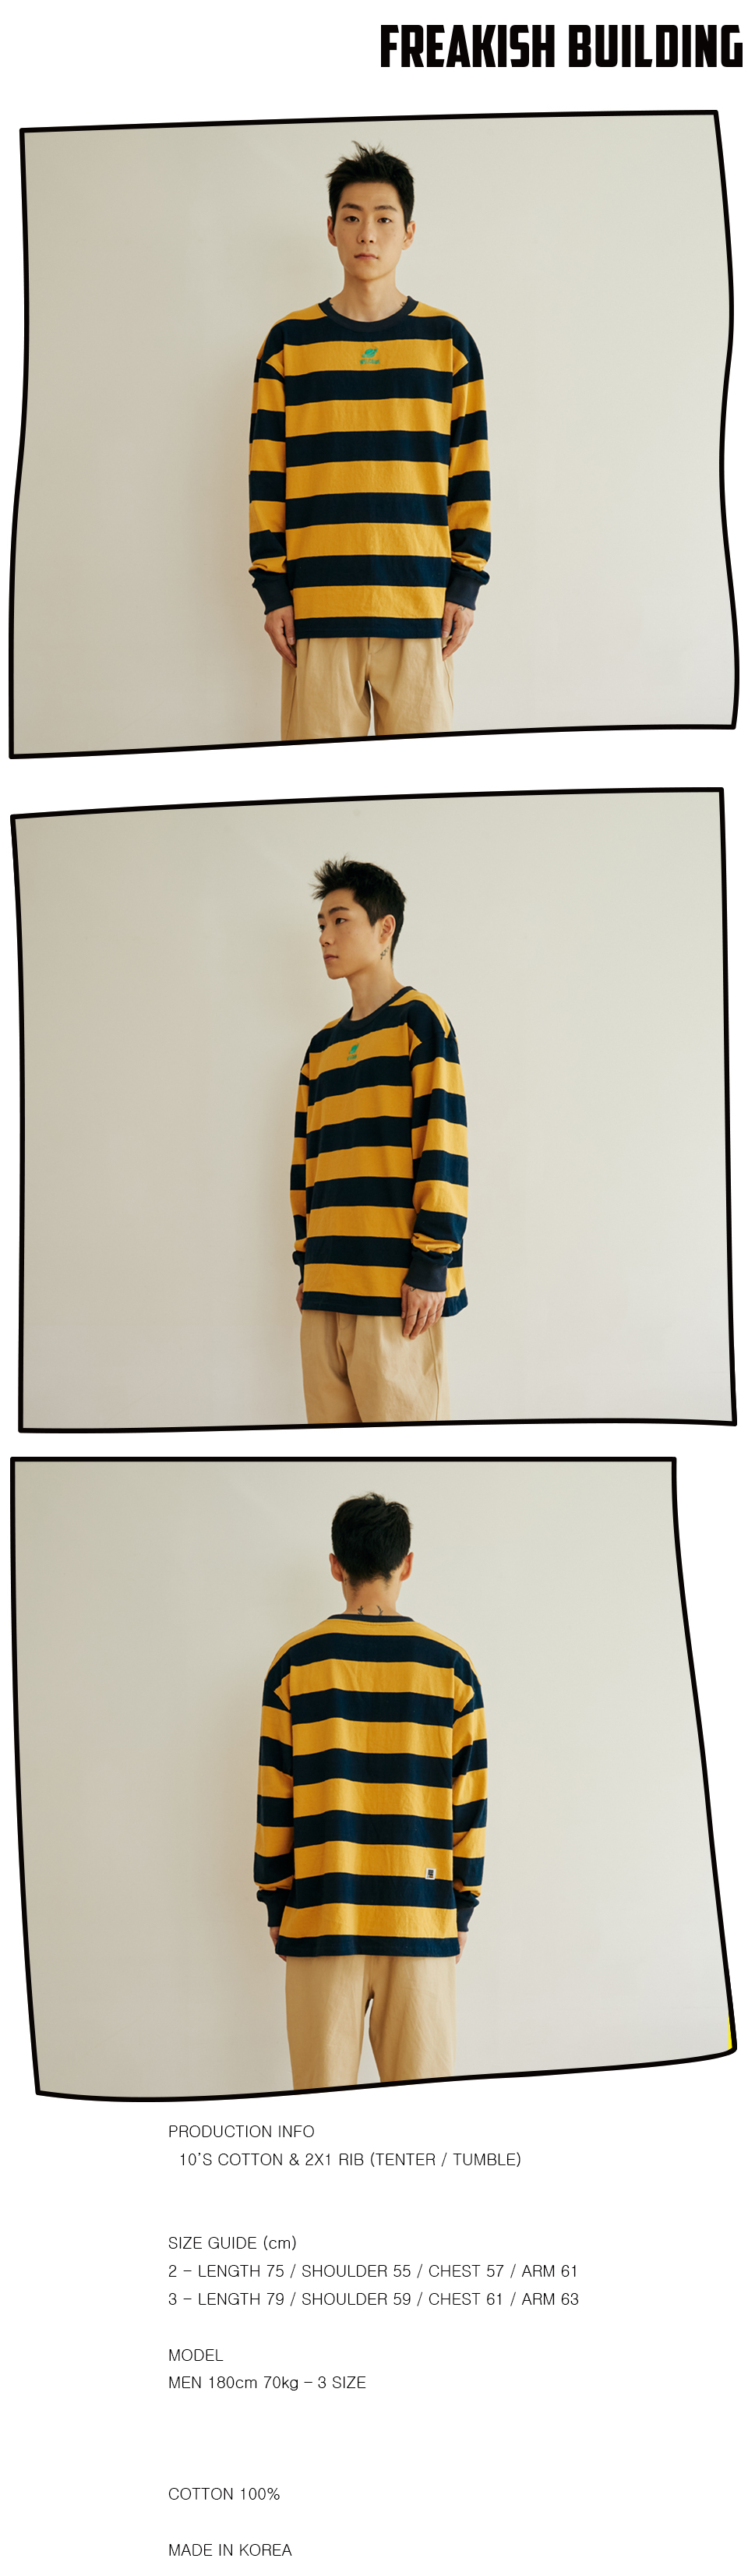 #01 FOLCOM LONG SLEEVE T-SHIRTS  (YELLOW) 02.jpg